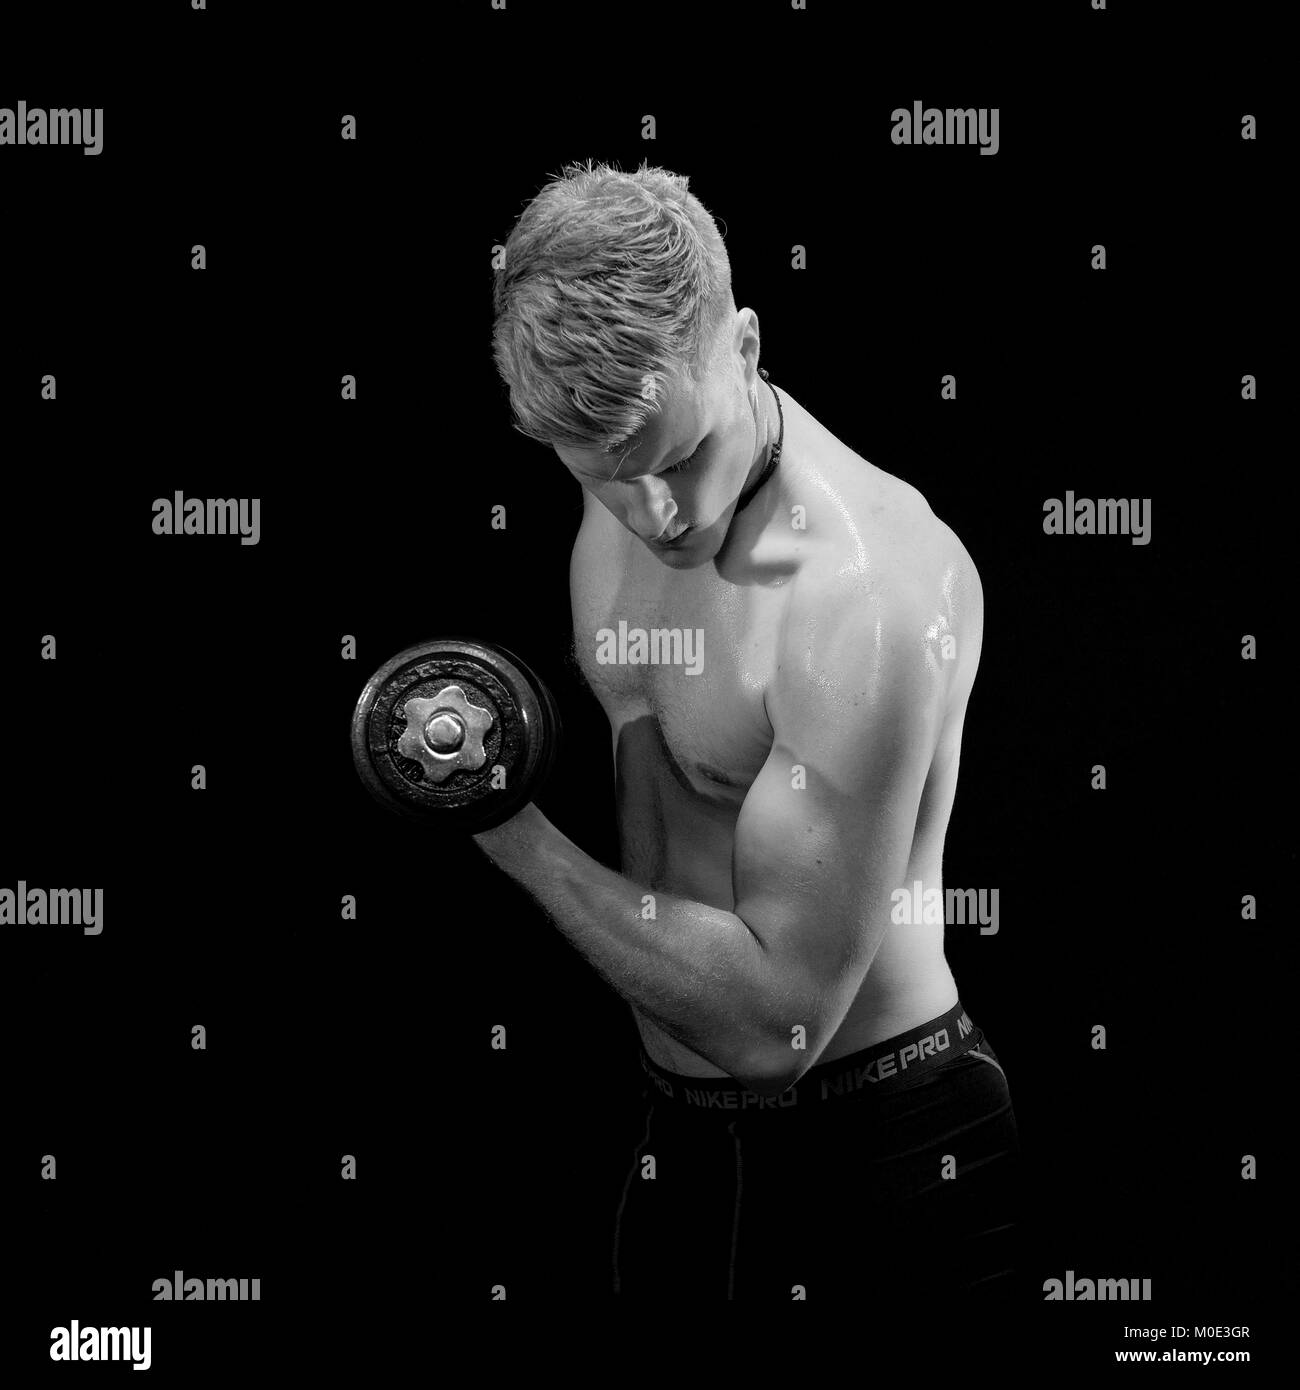 Young man keeping fit against a black background - Stock Image